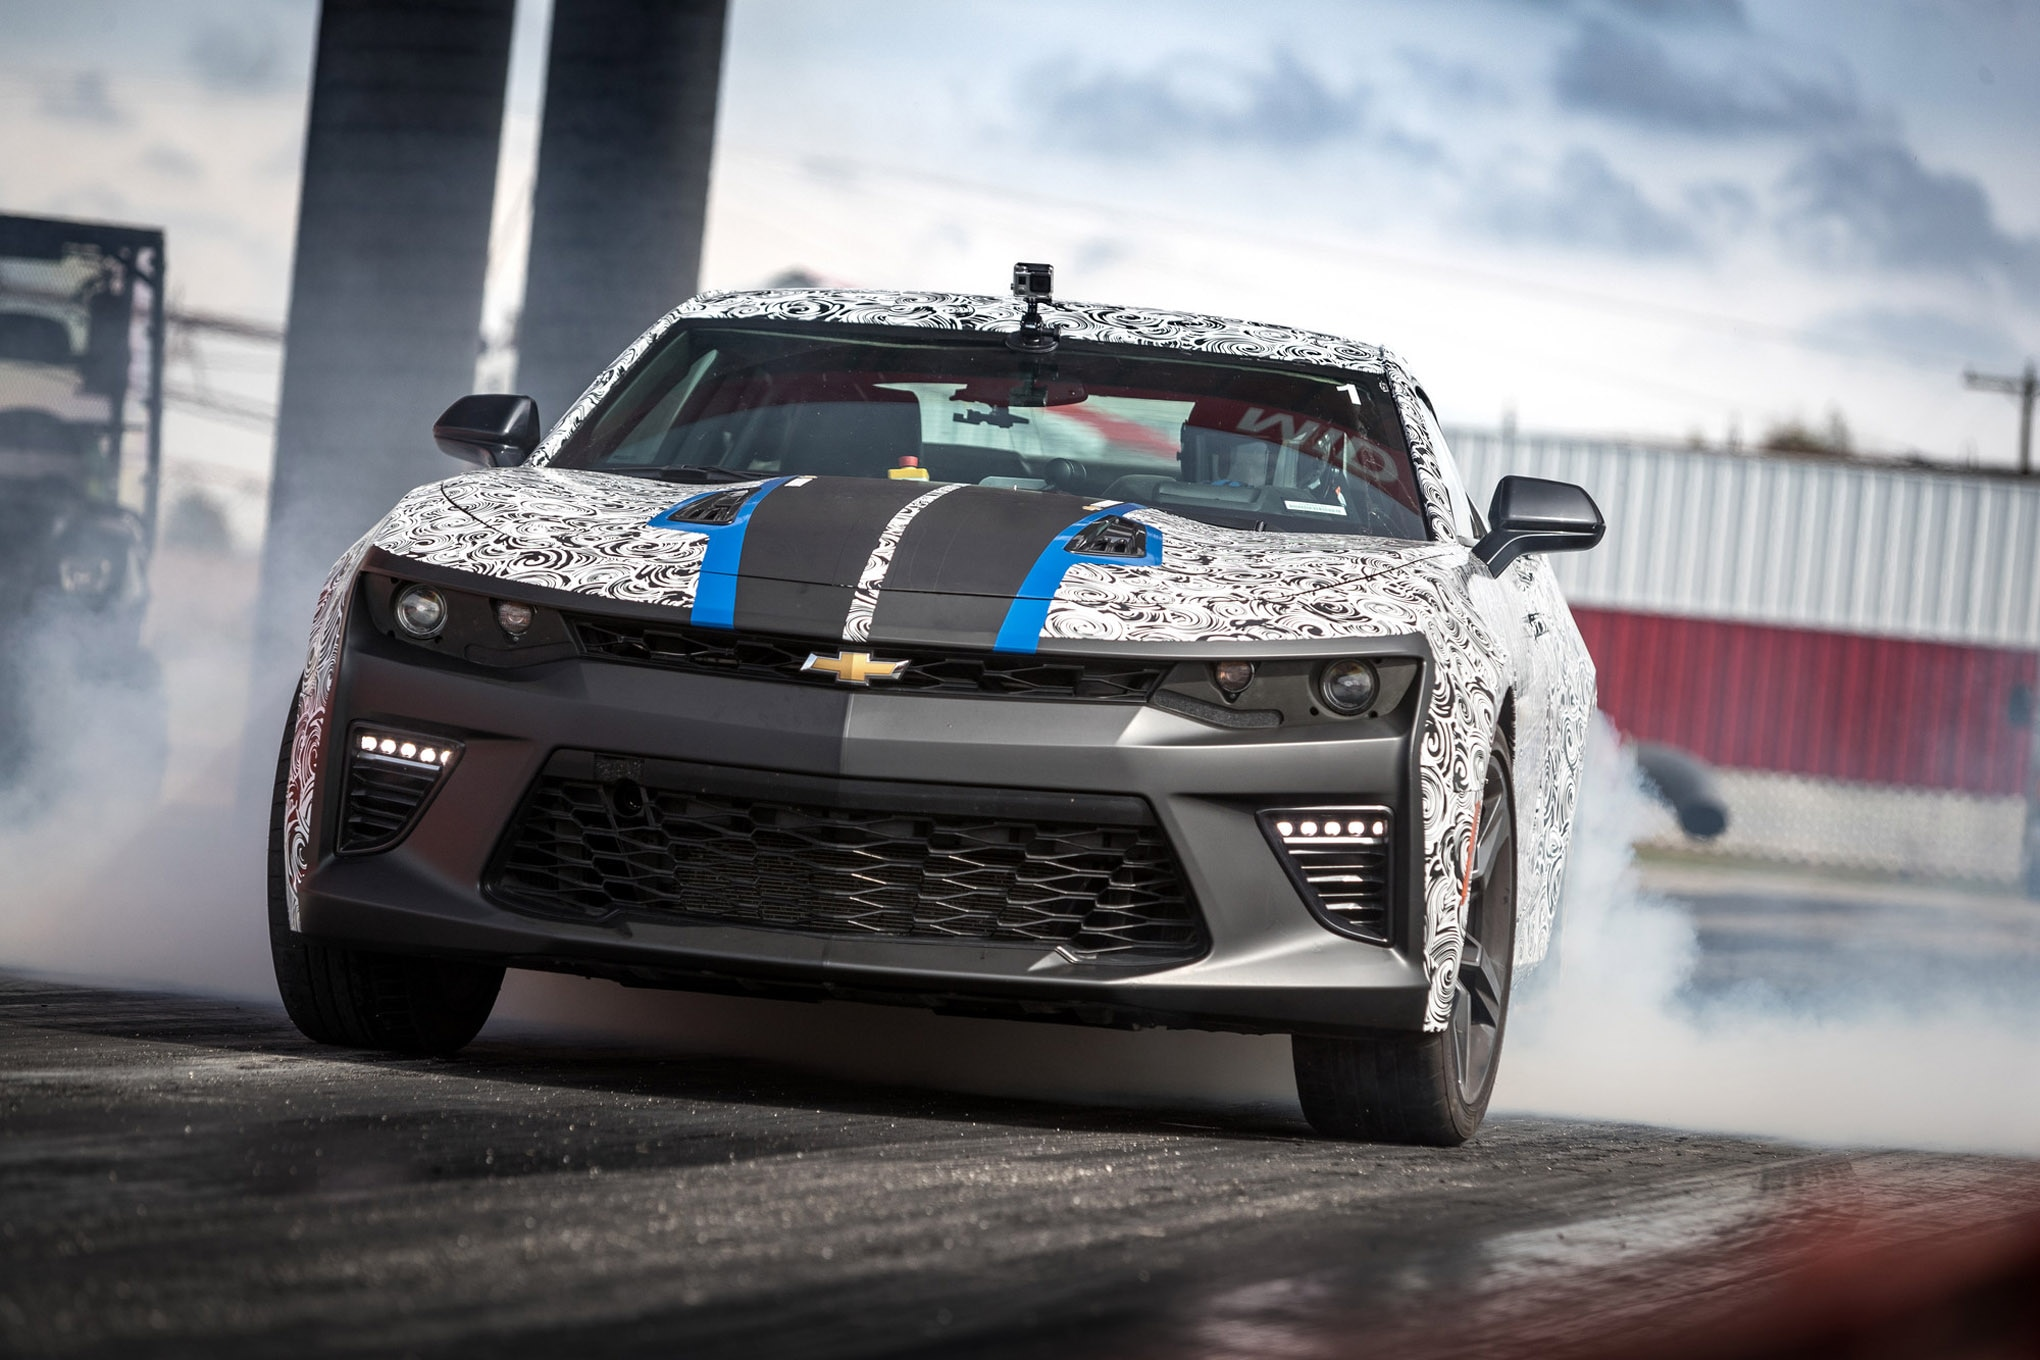 Final validation for parts includes 200 back-to-back runs on a prepped dragstrip, the same testing process that's used for the COPO Camaro.